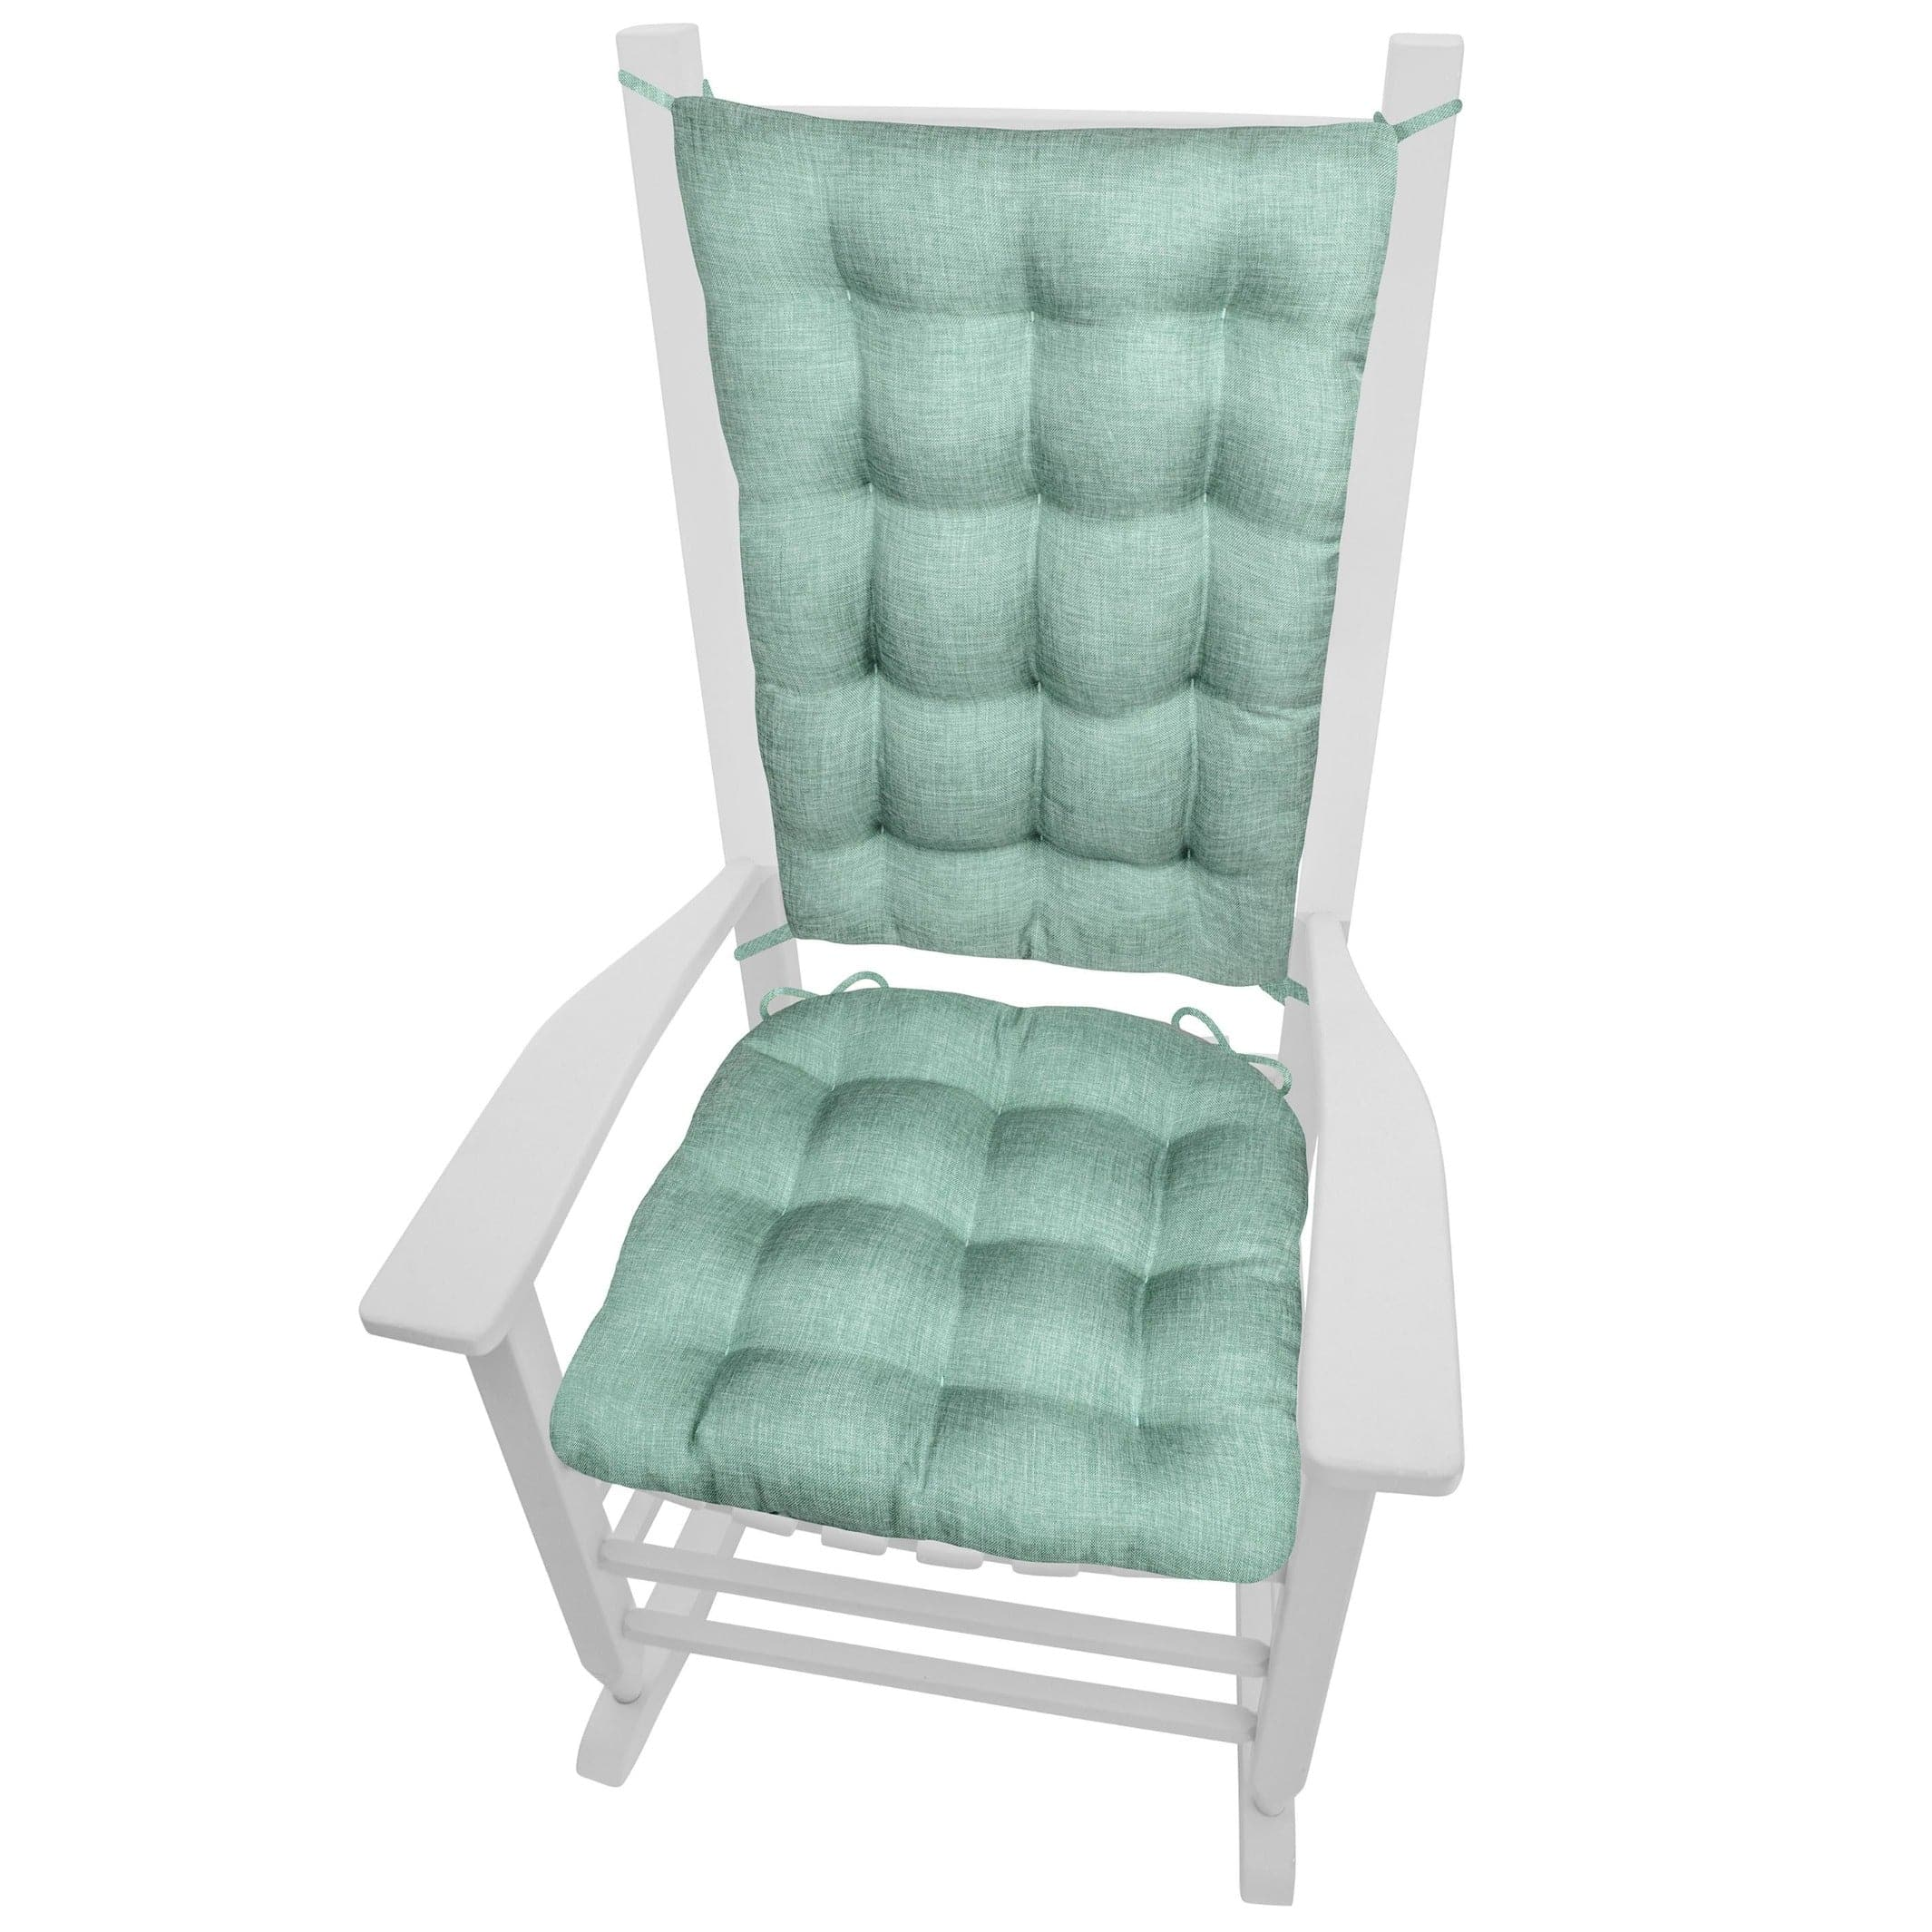 Hayden Turquoise Rocking Chair Cushions - Barnett Home Decor - Teal